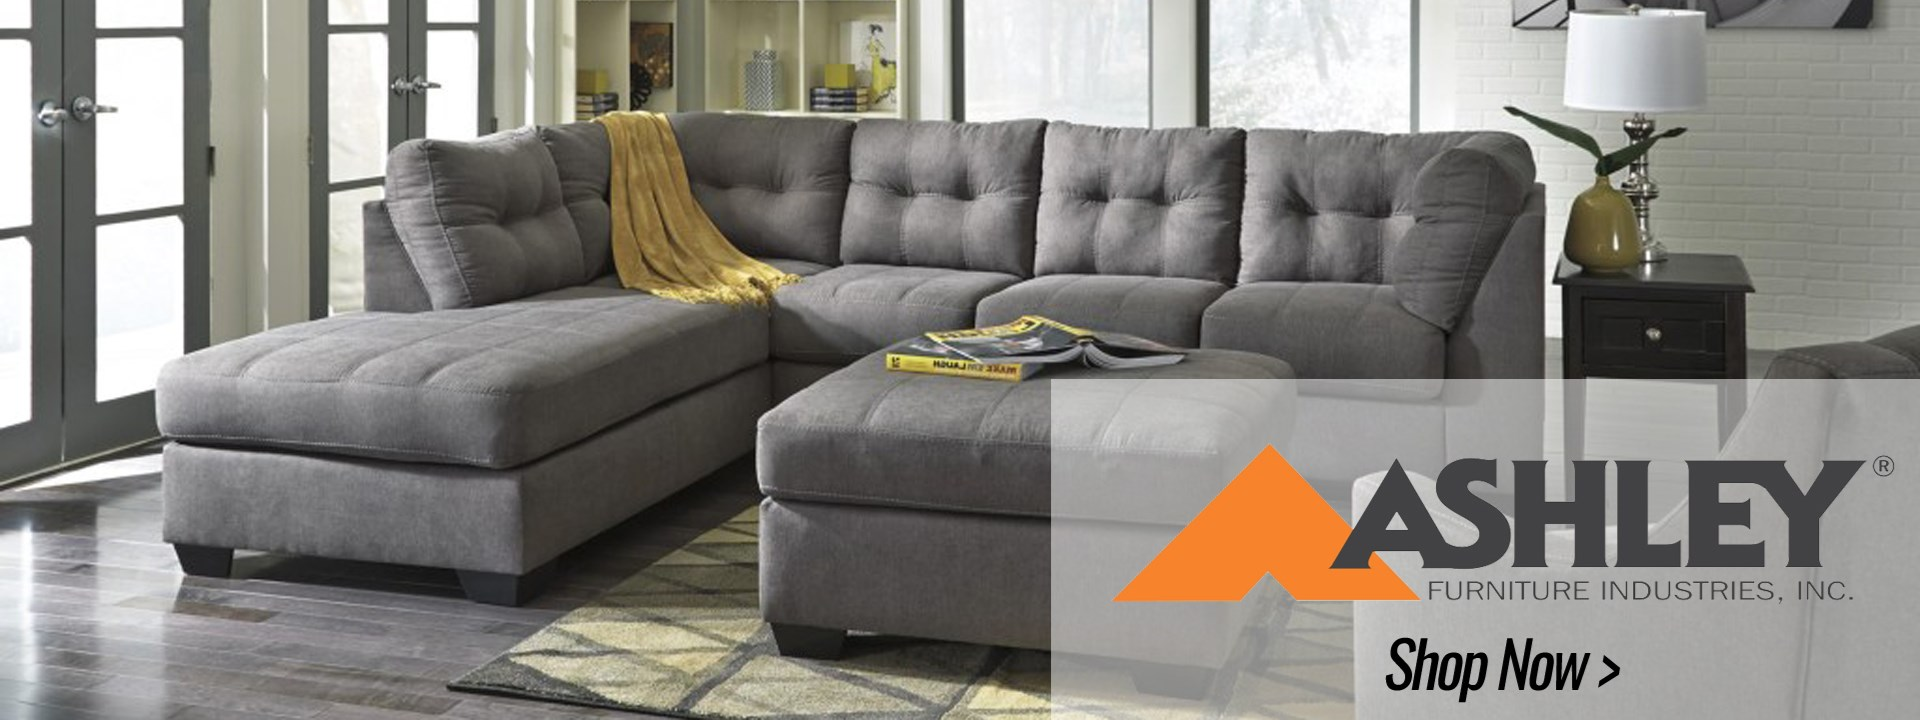 Ashley Furniture Industries - Shop Now